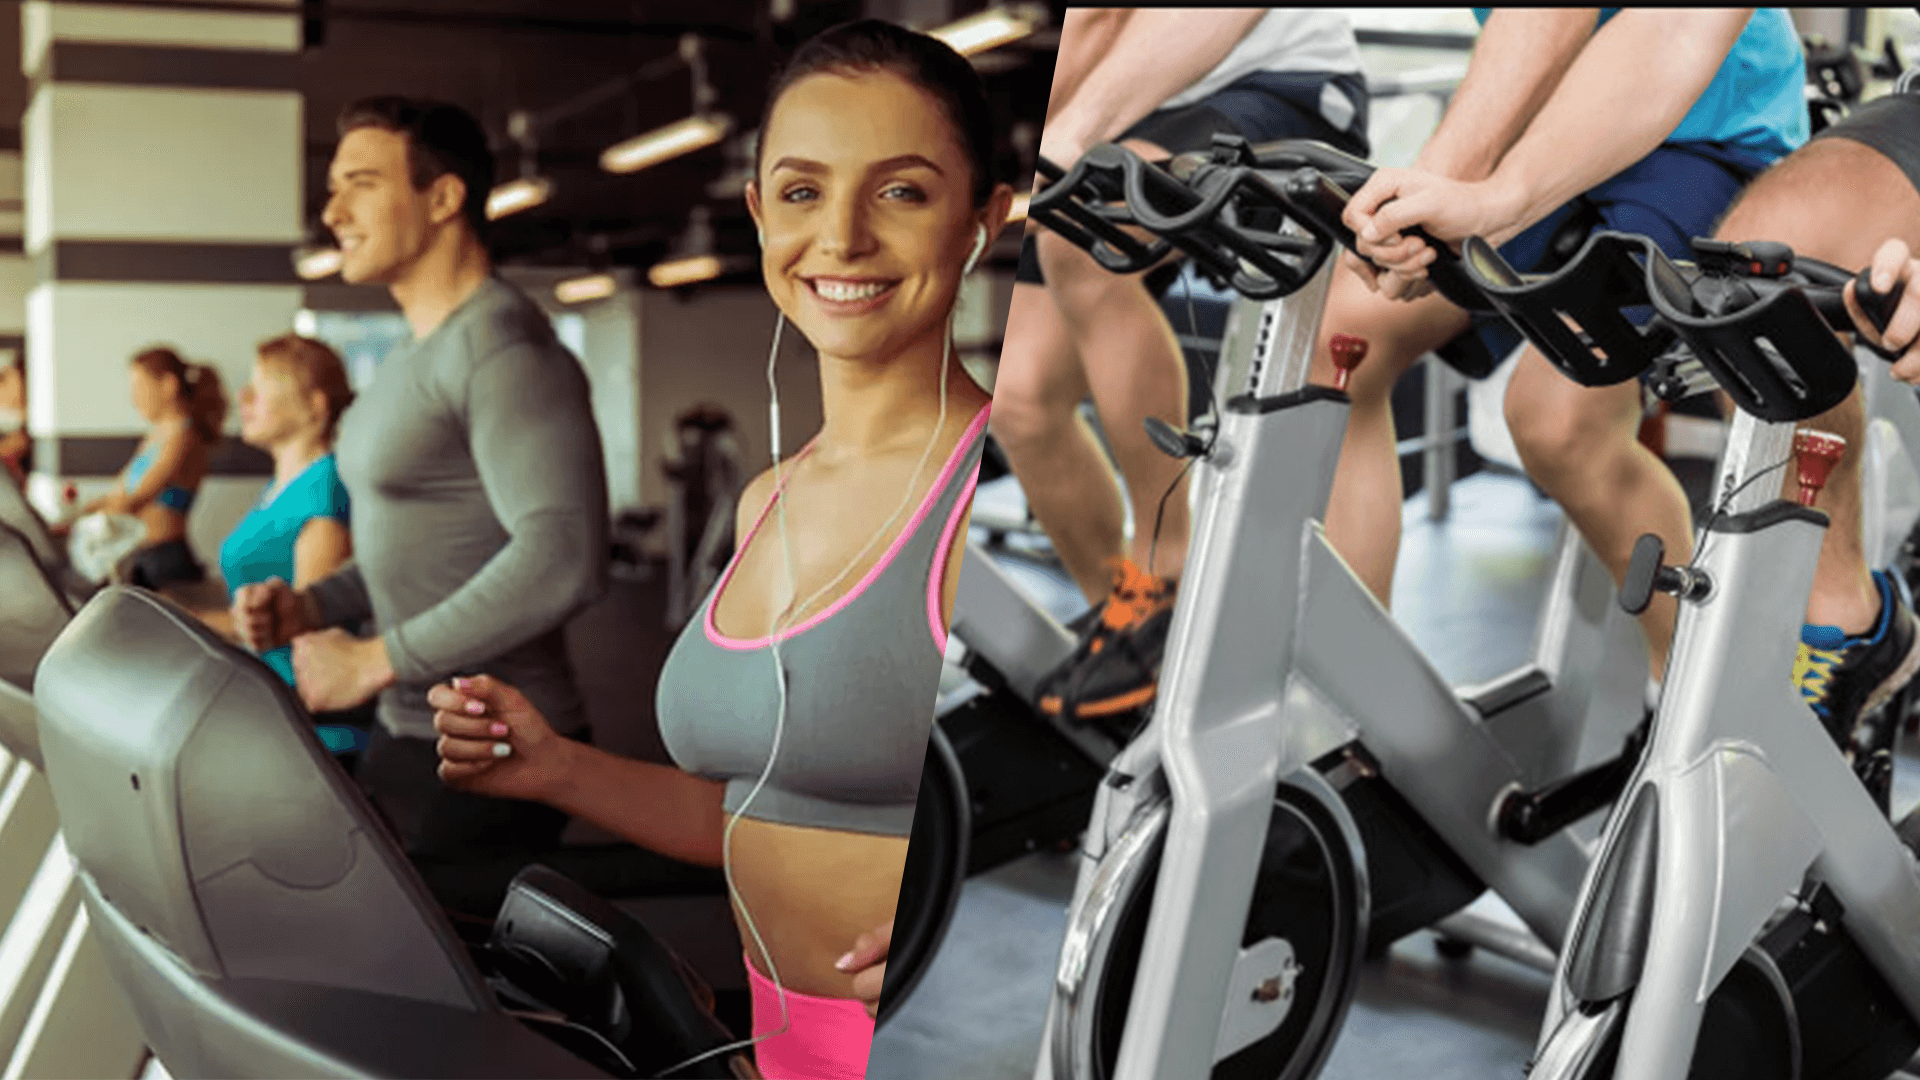 My verdict - Which Is Better - treadmill or stationary bike